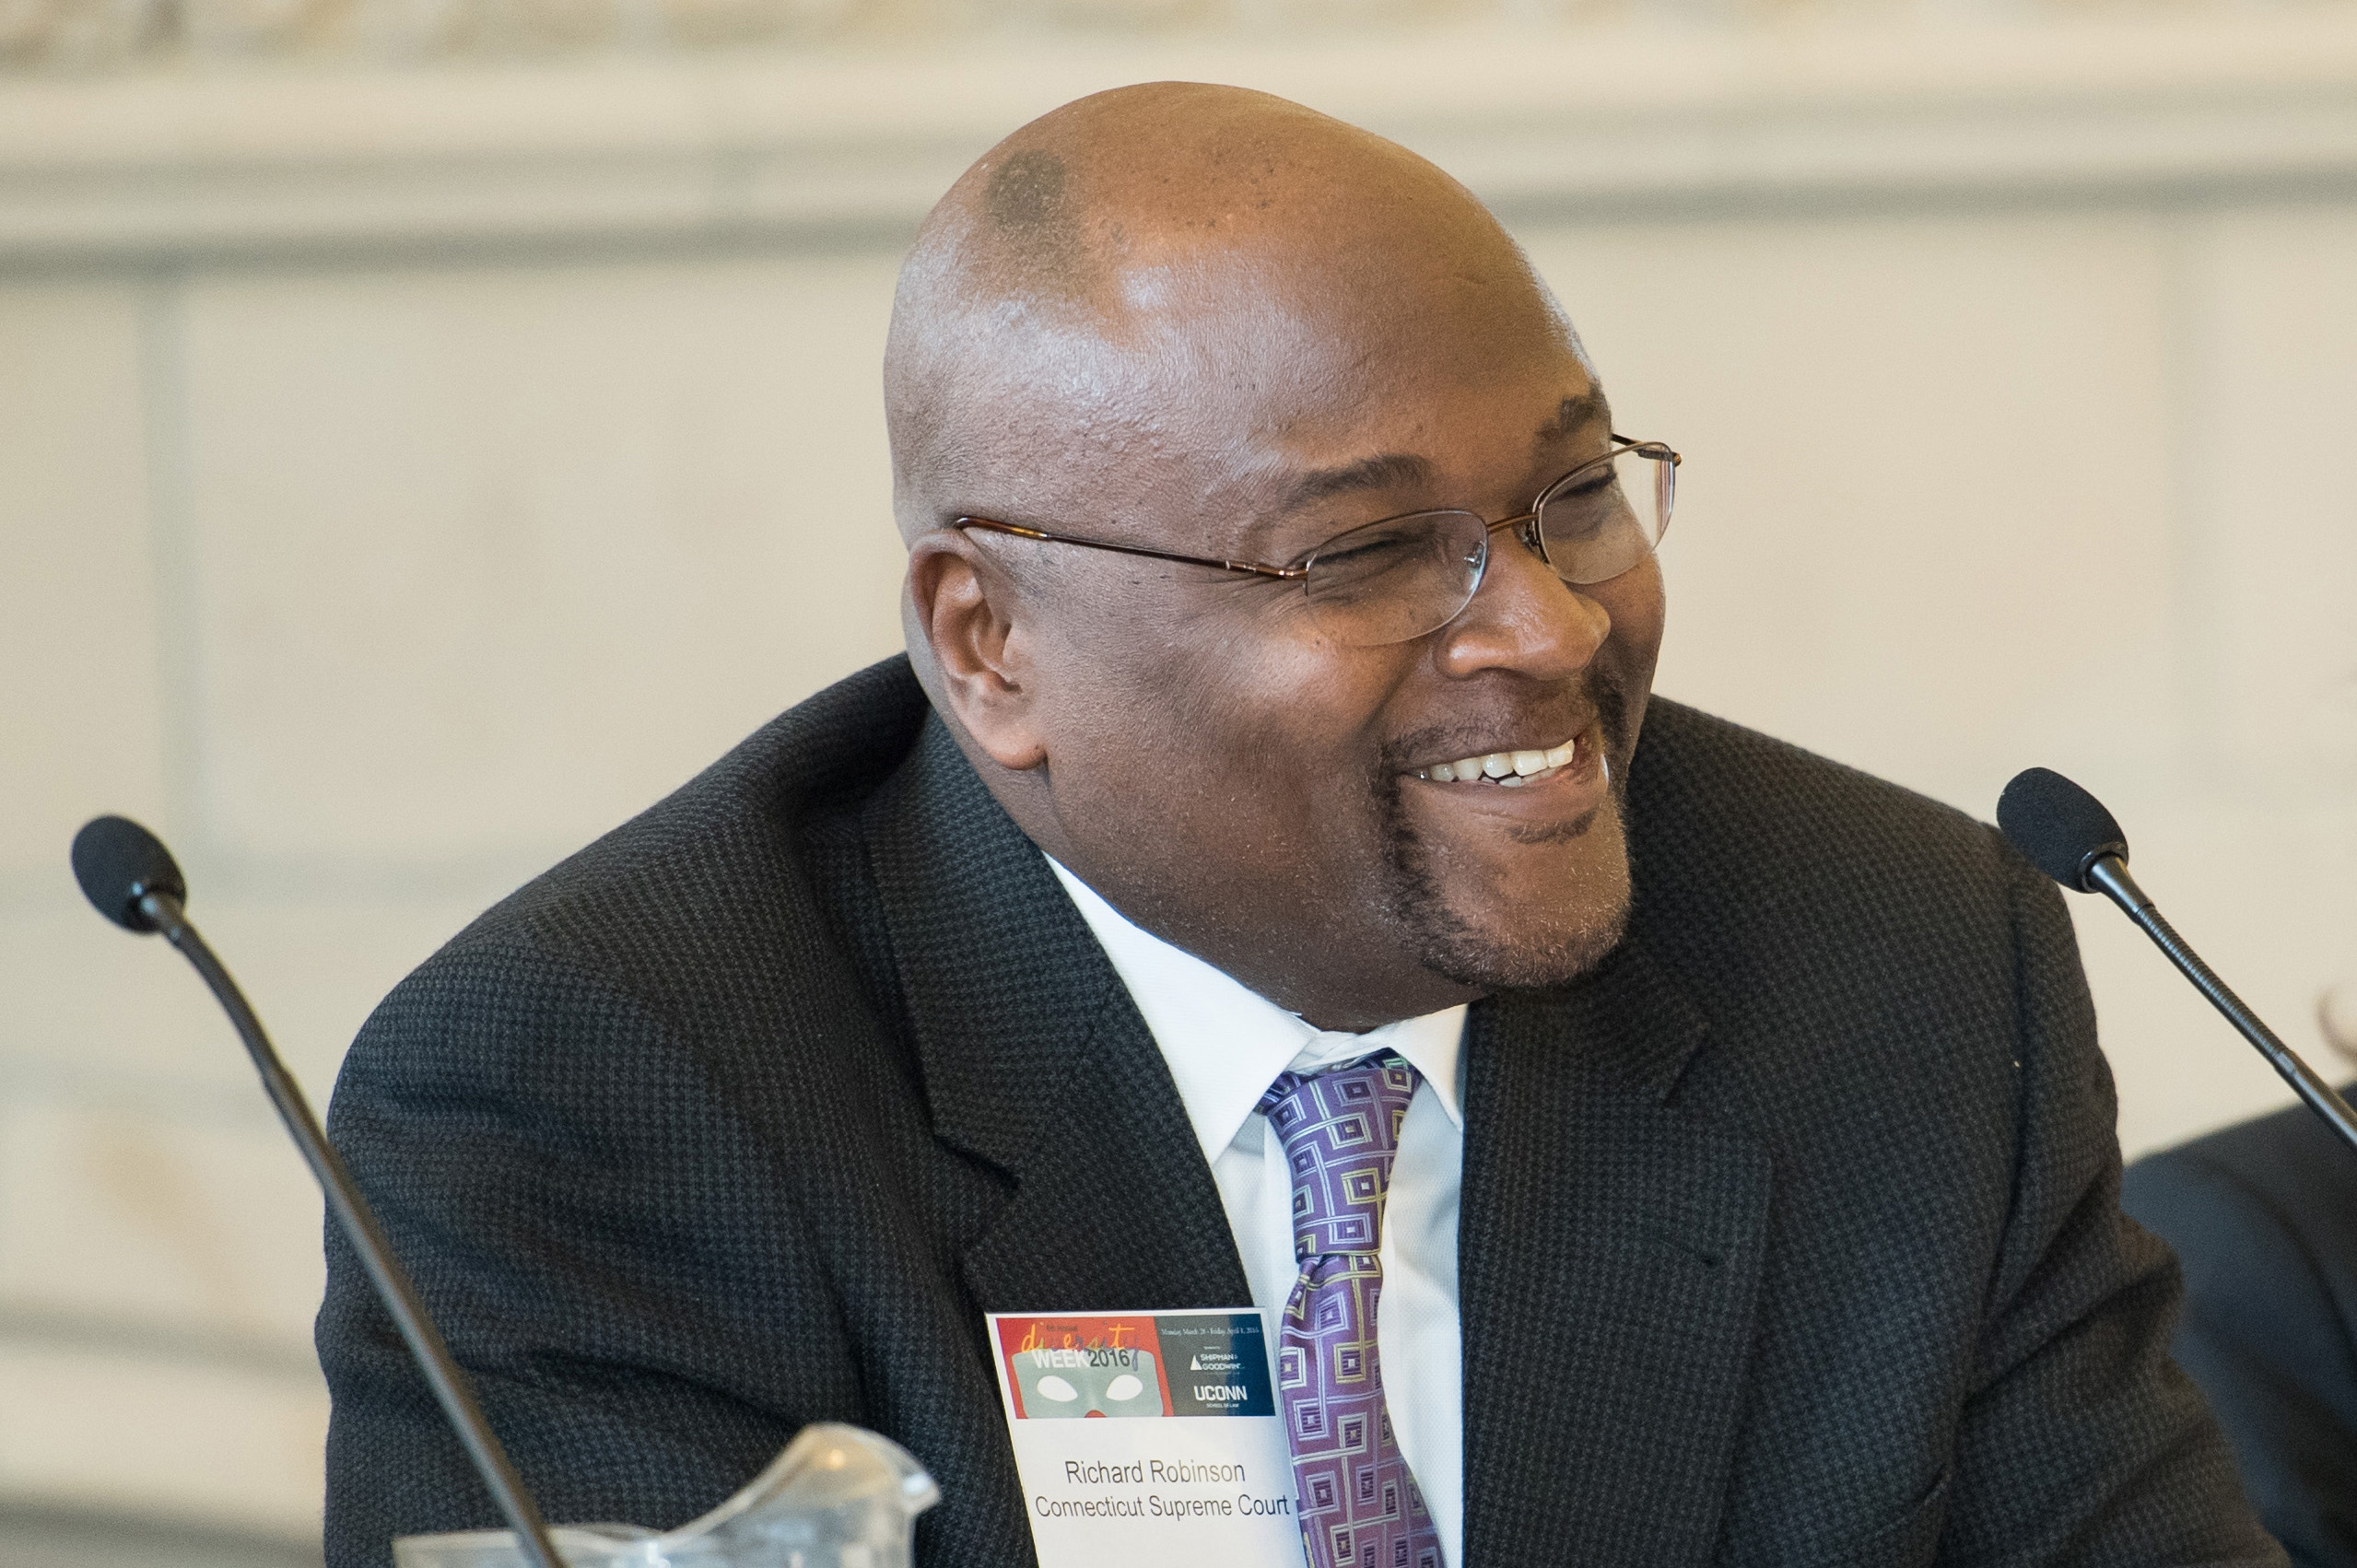 Richard A. Robinson '79 (CLAS) has been appointed as the next chief justice of the Connecticut Supreme Court. Here he is pictured as a speaker on a panel at UConn Law in 2016. (Spencer Sloan for UConn)